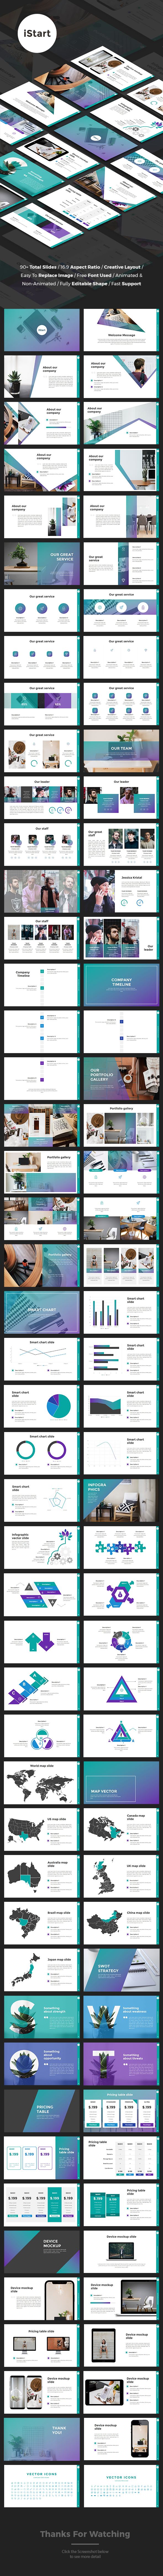 iStart - StartUp Keynote Template - Business Keynote Templates